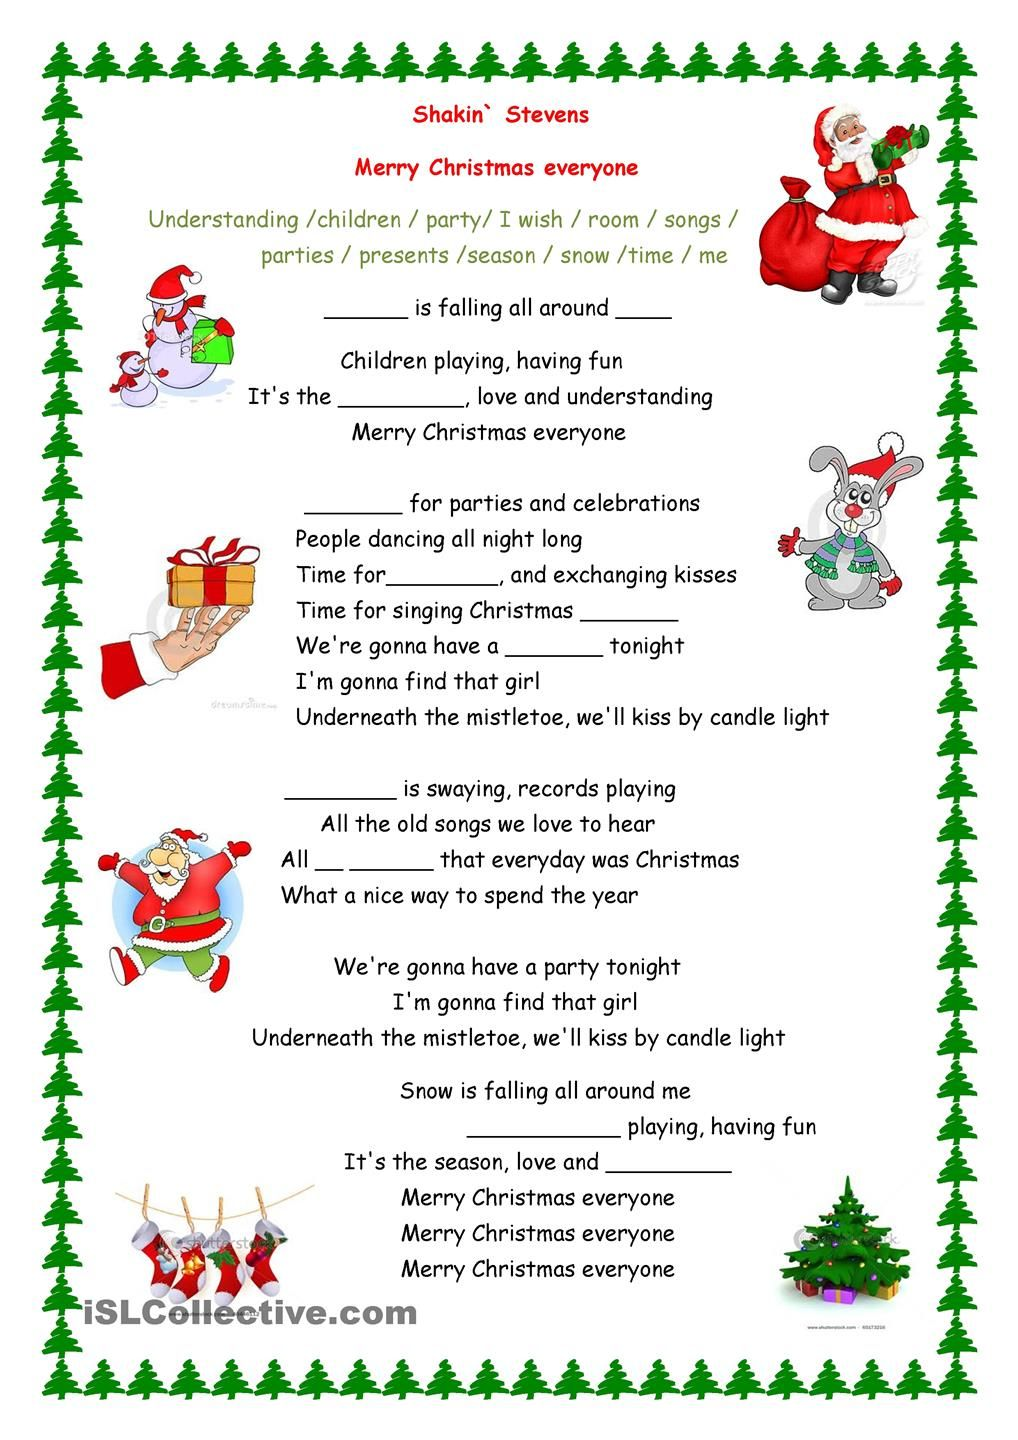 Merry Christmas everyone song Christmas Lessons